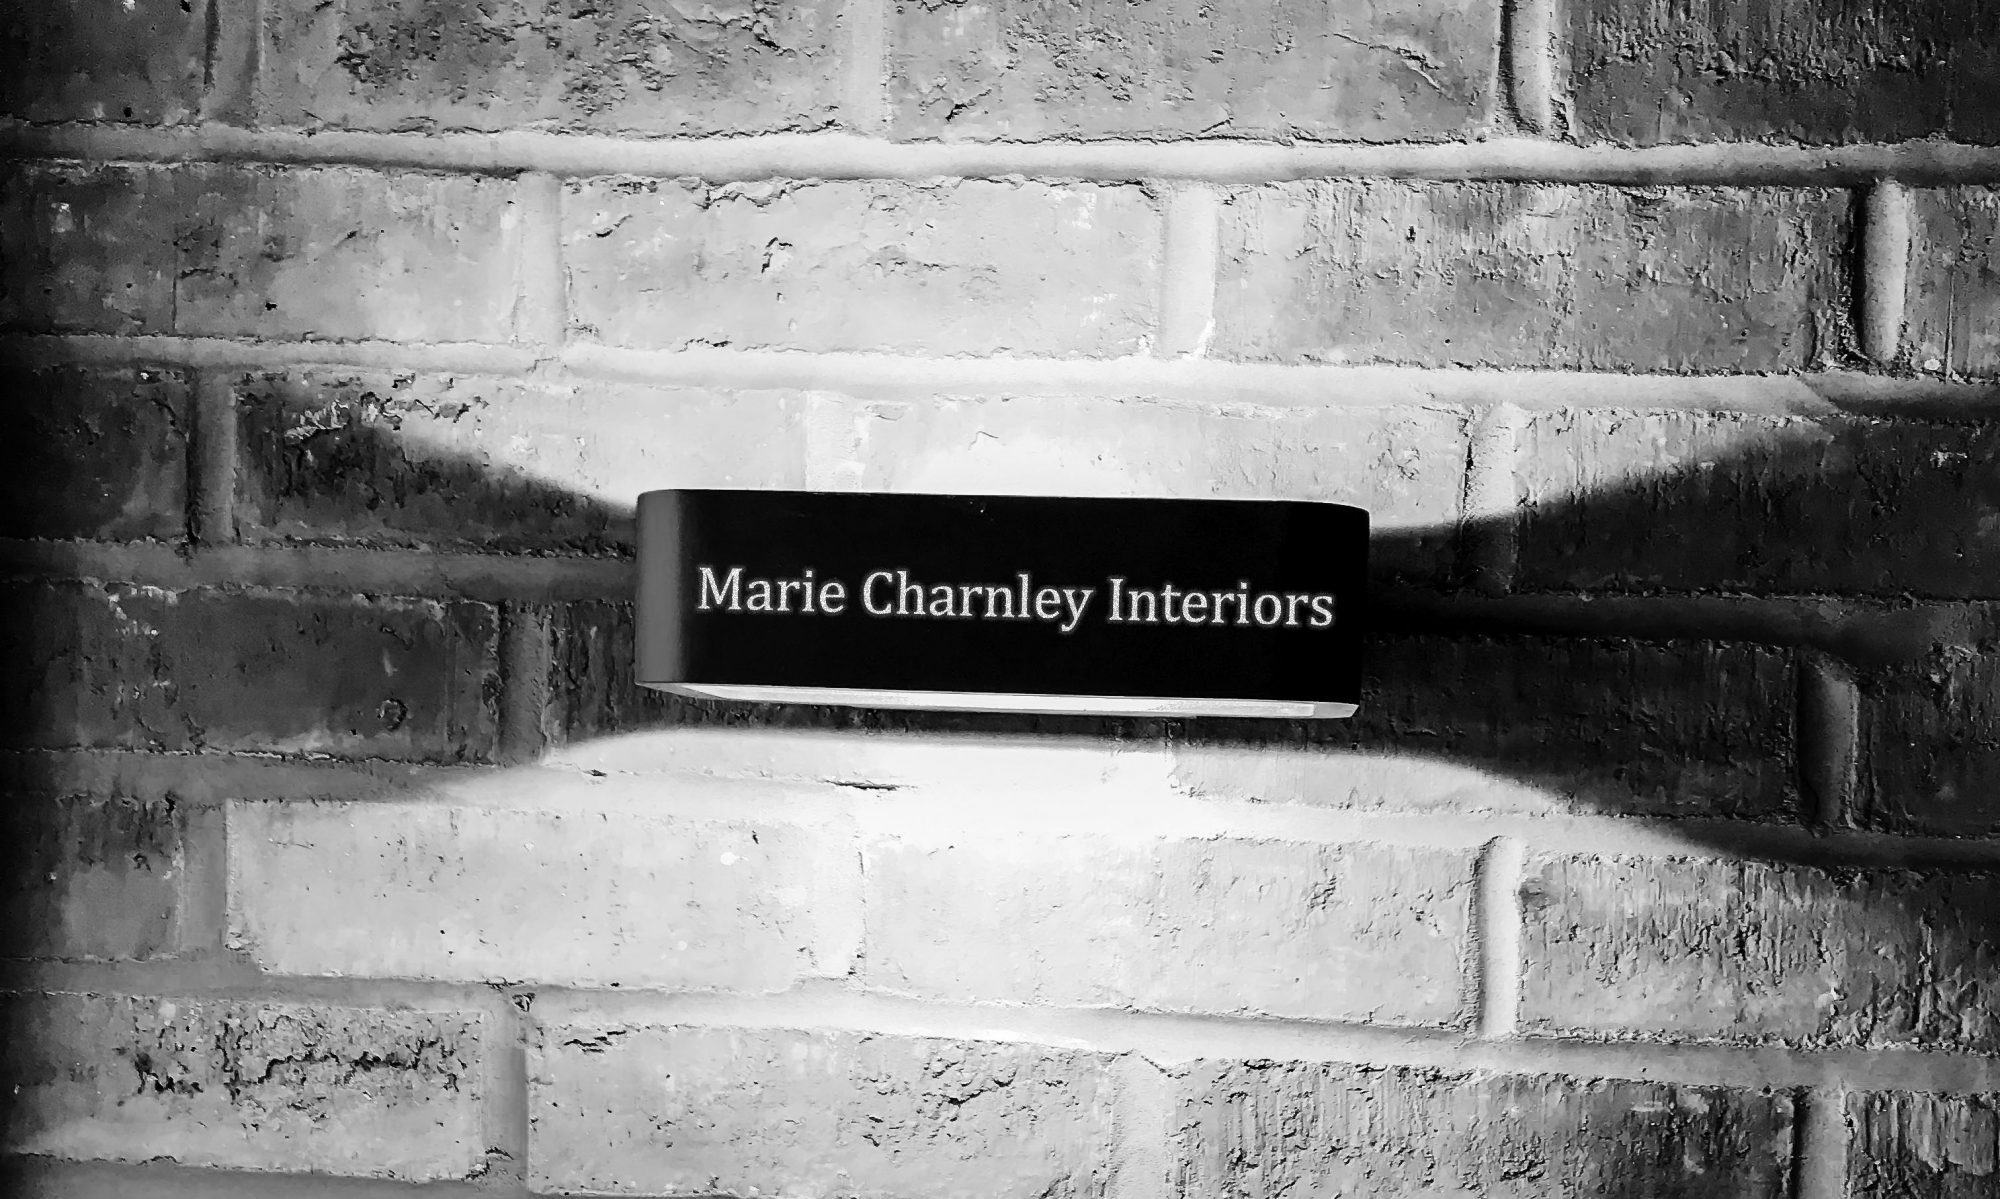 Marie Charnley Interiors